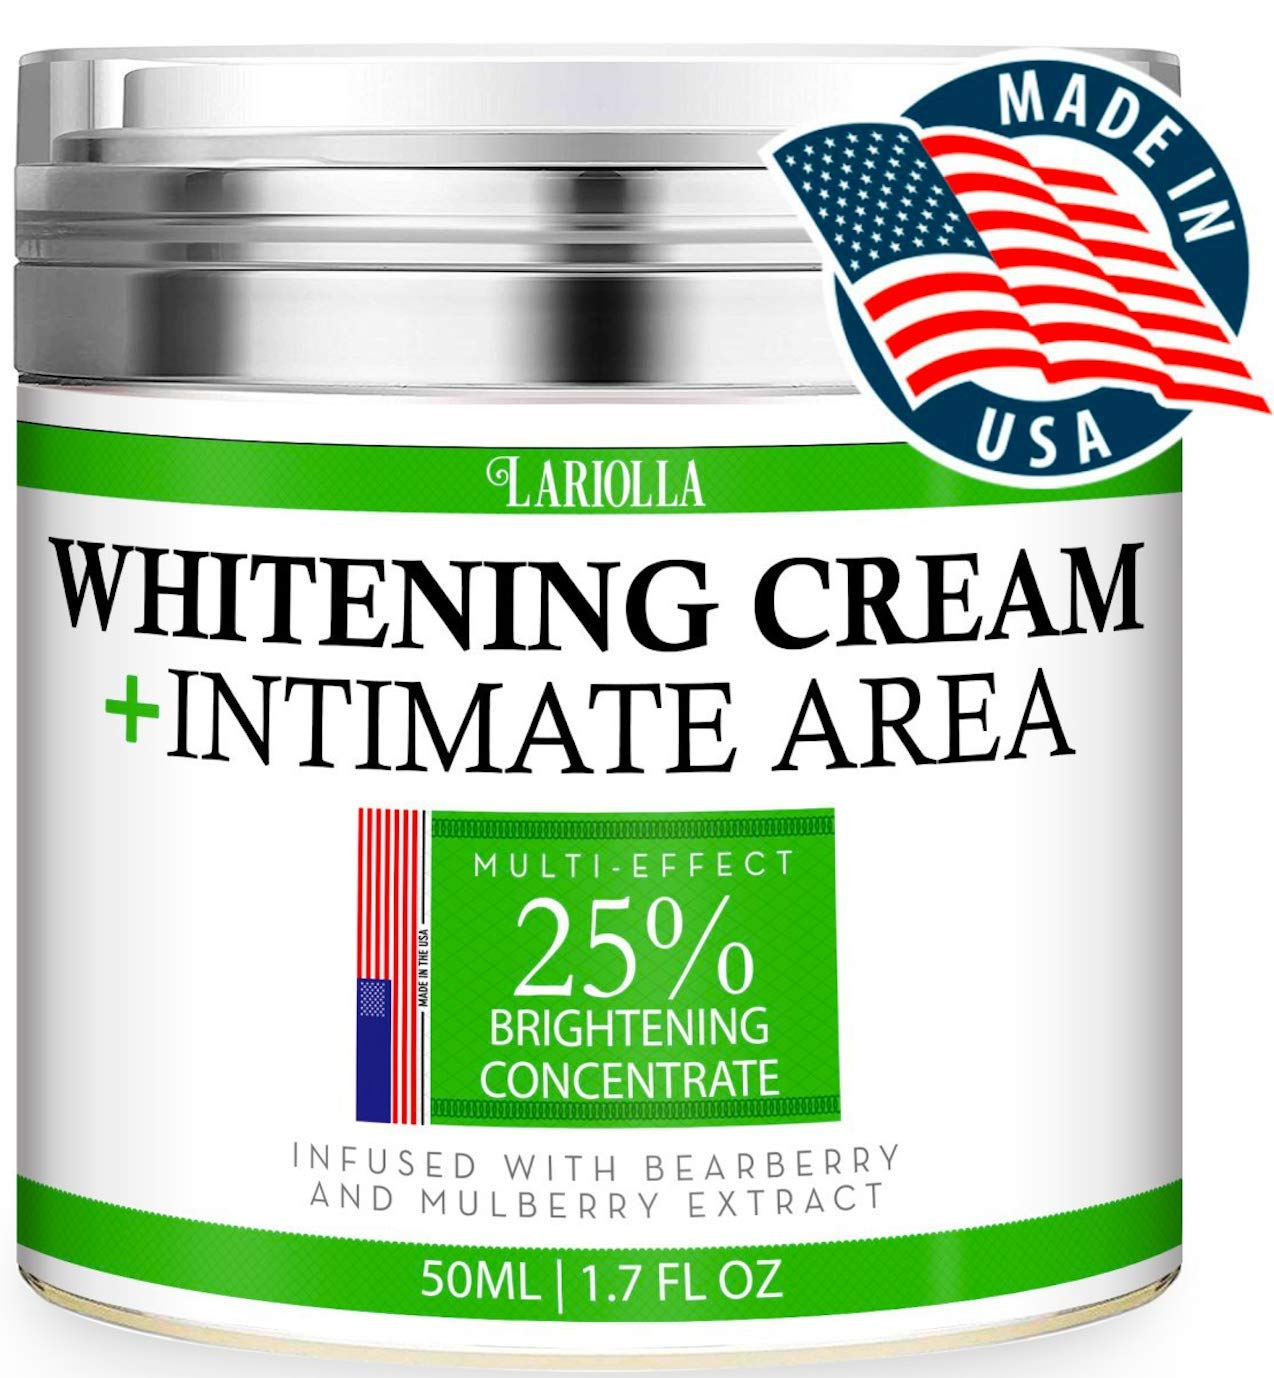 Whitening Cream - Advanced Skin Bleaching Cream for Face - Body - Intimate Areas - Underarm Whitening Cream - Private Parts - Made in USA - Melasma & Hyperpigmentation Treatment - 50 ML by Lariolla